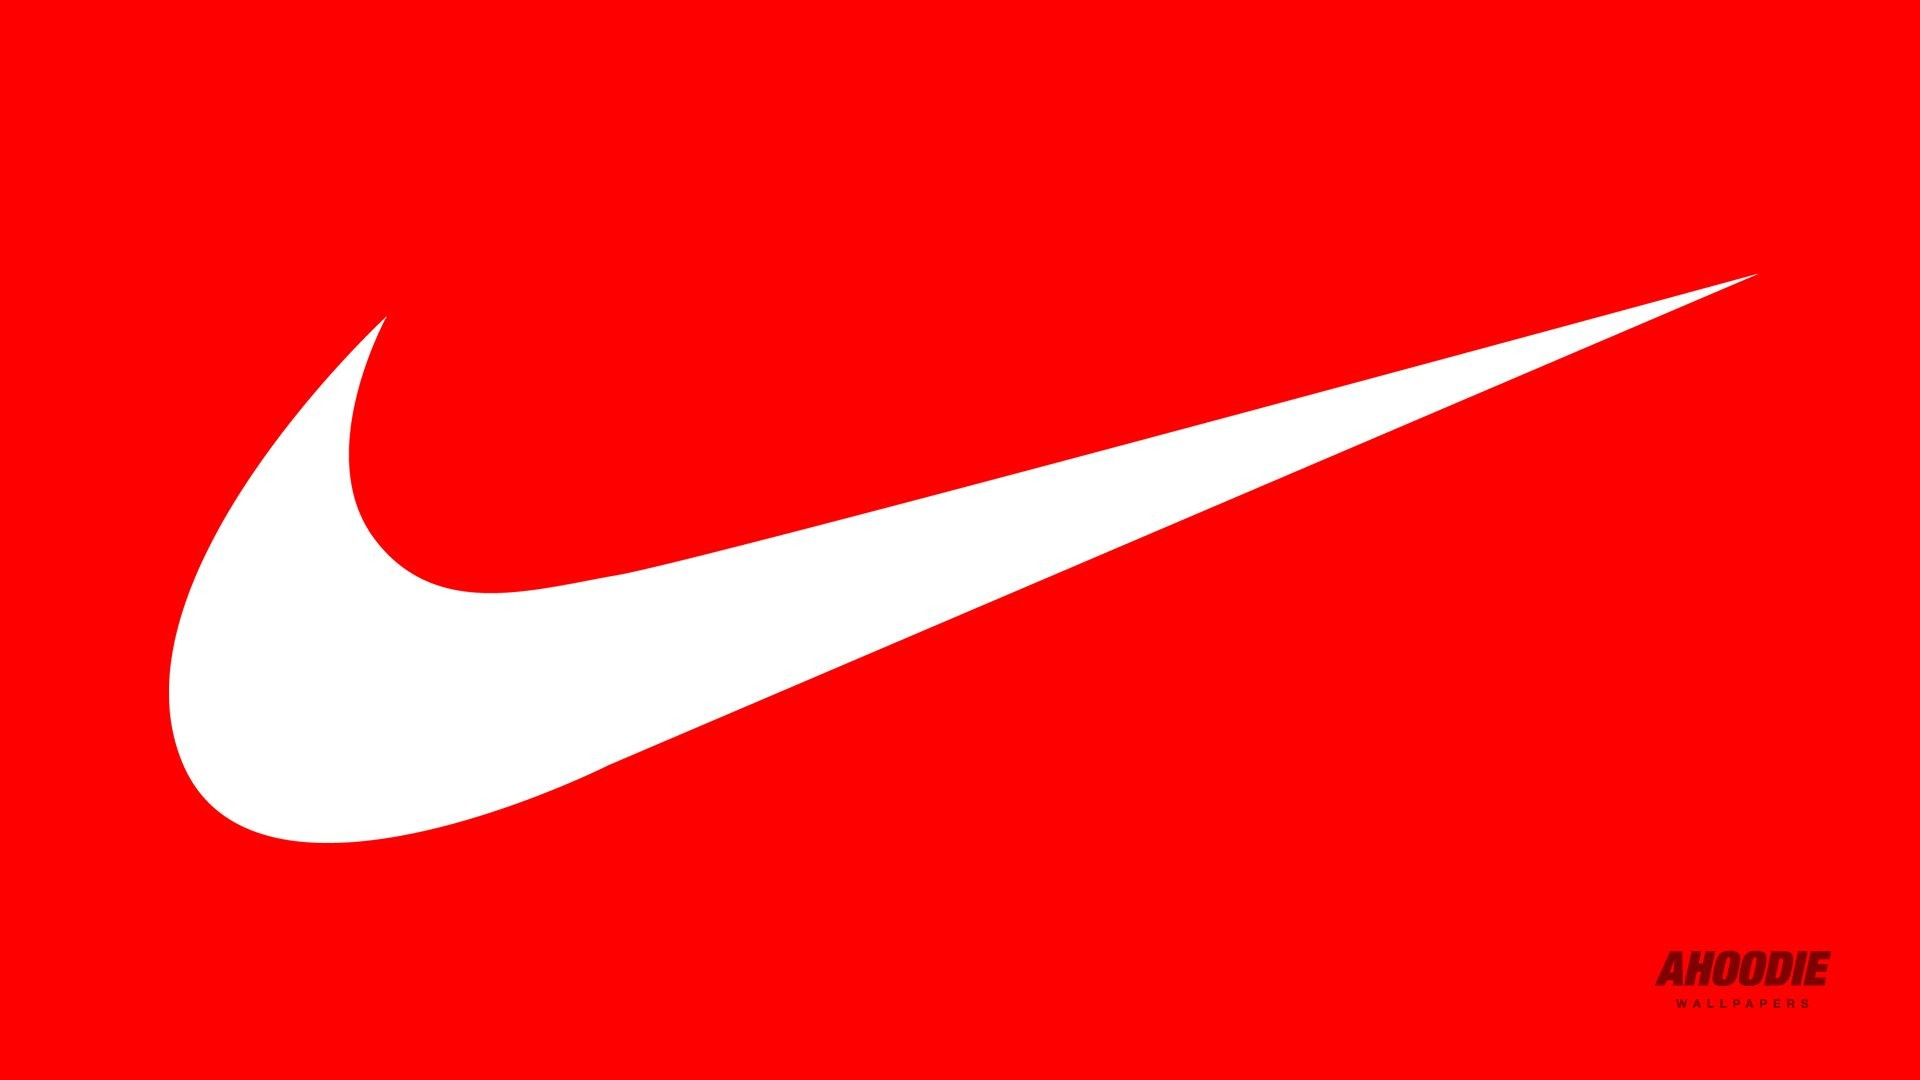 1920x1080 Nike 3D Wallpapers - Wallpaper Cave